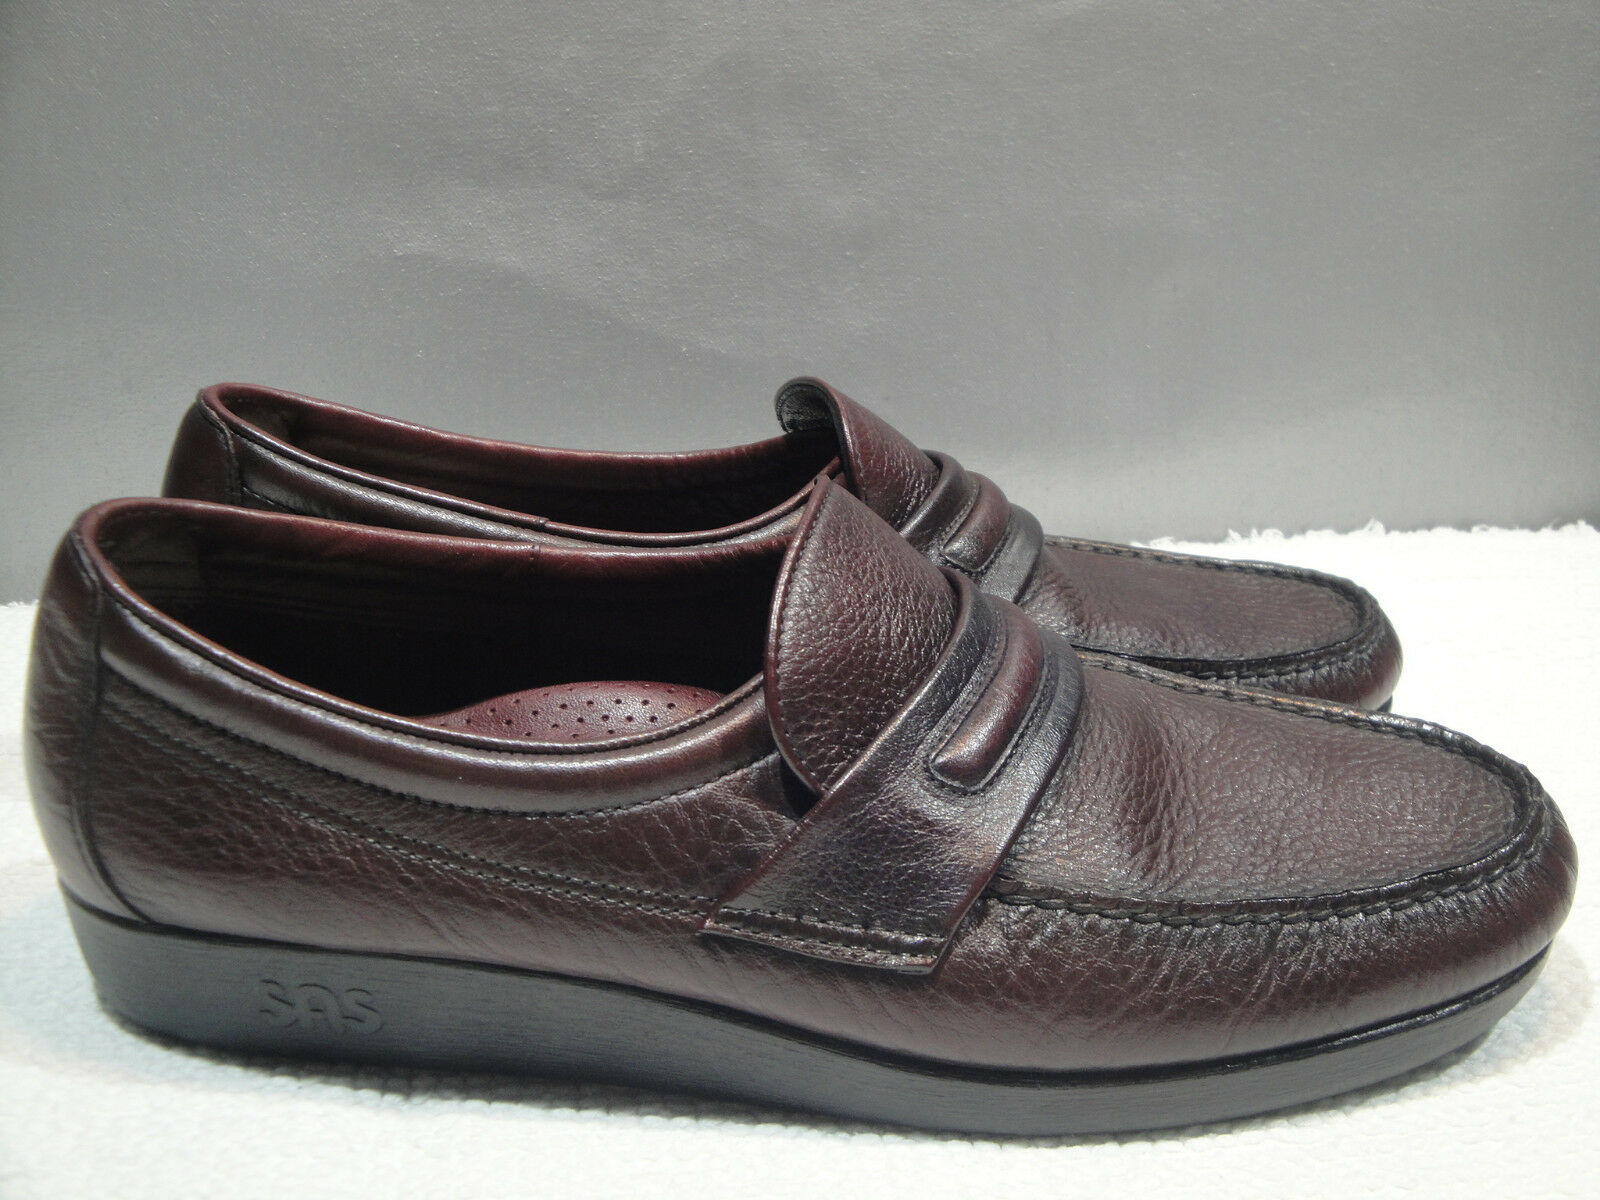 MENS 13.5 M SAS USA CORDOVAN LEATHER MOCCASIN WALKING COMFORT LOAFER SHOES